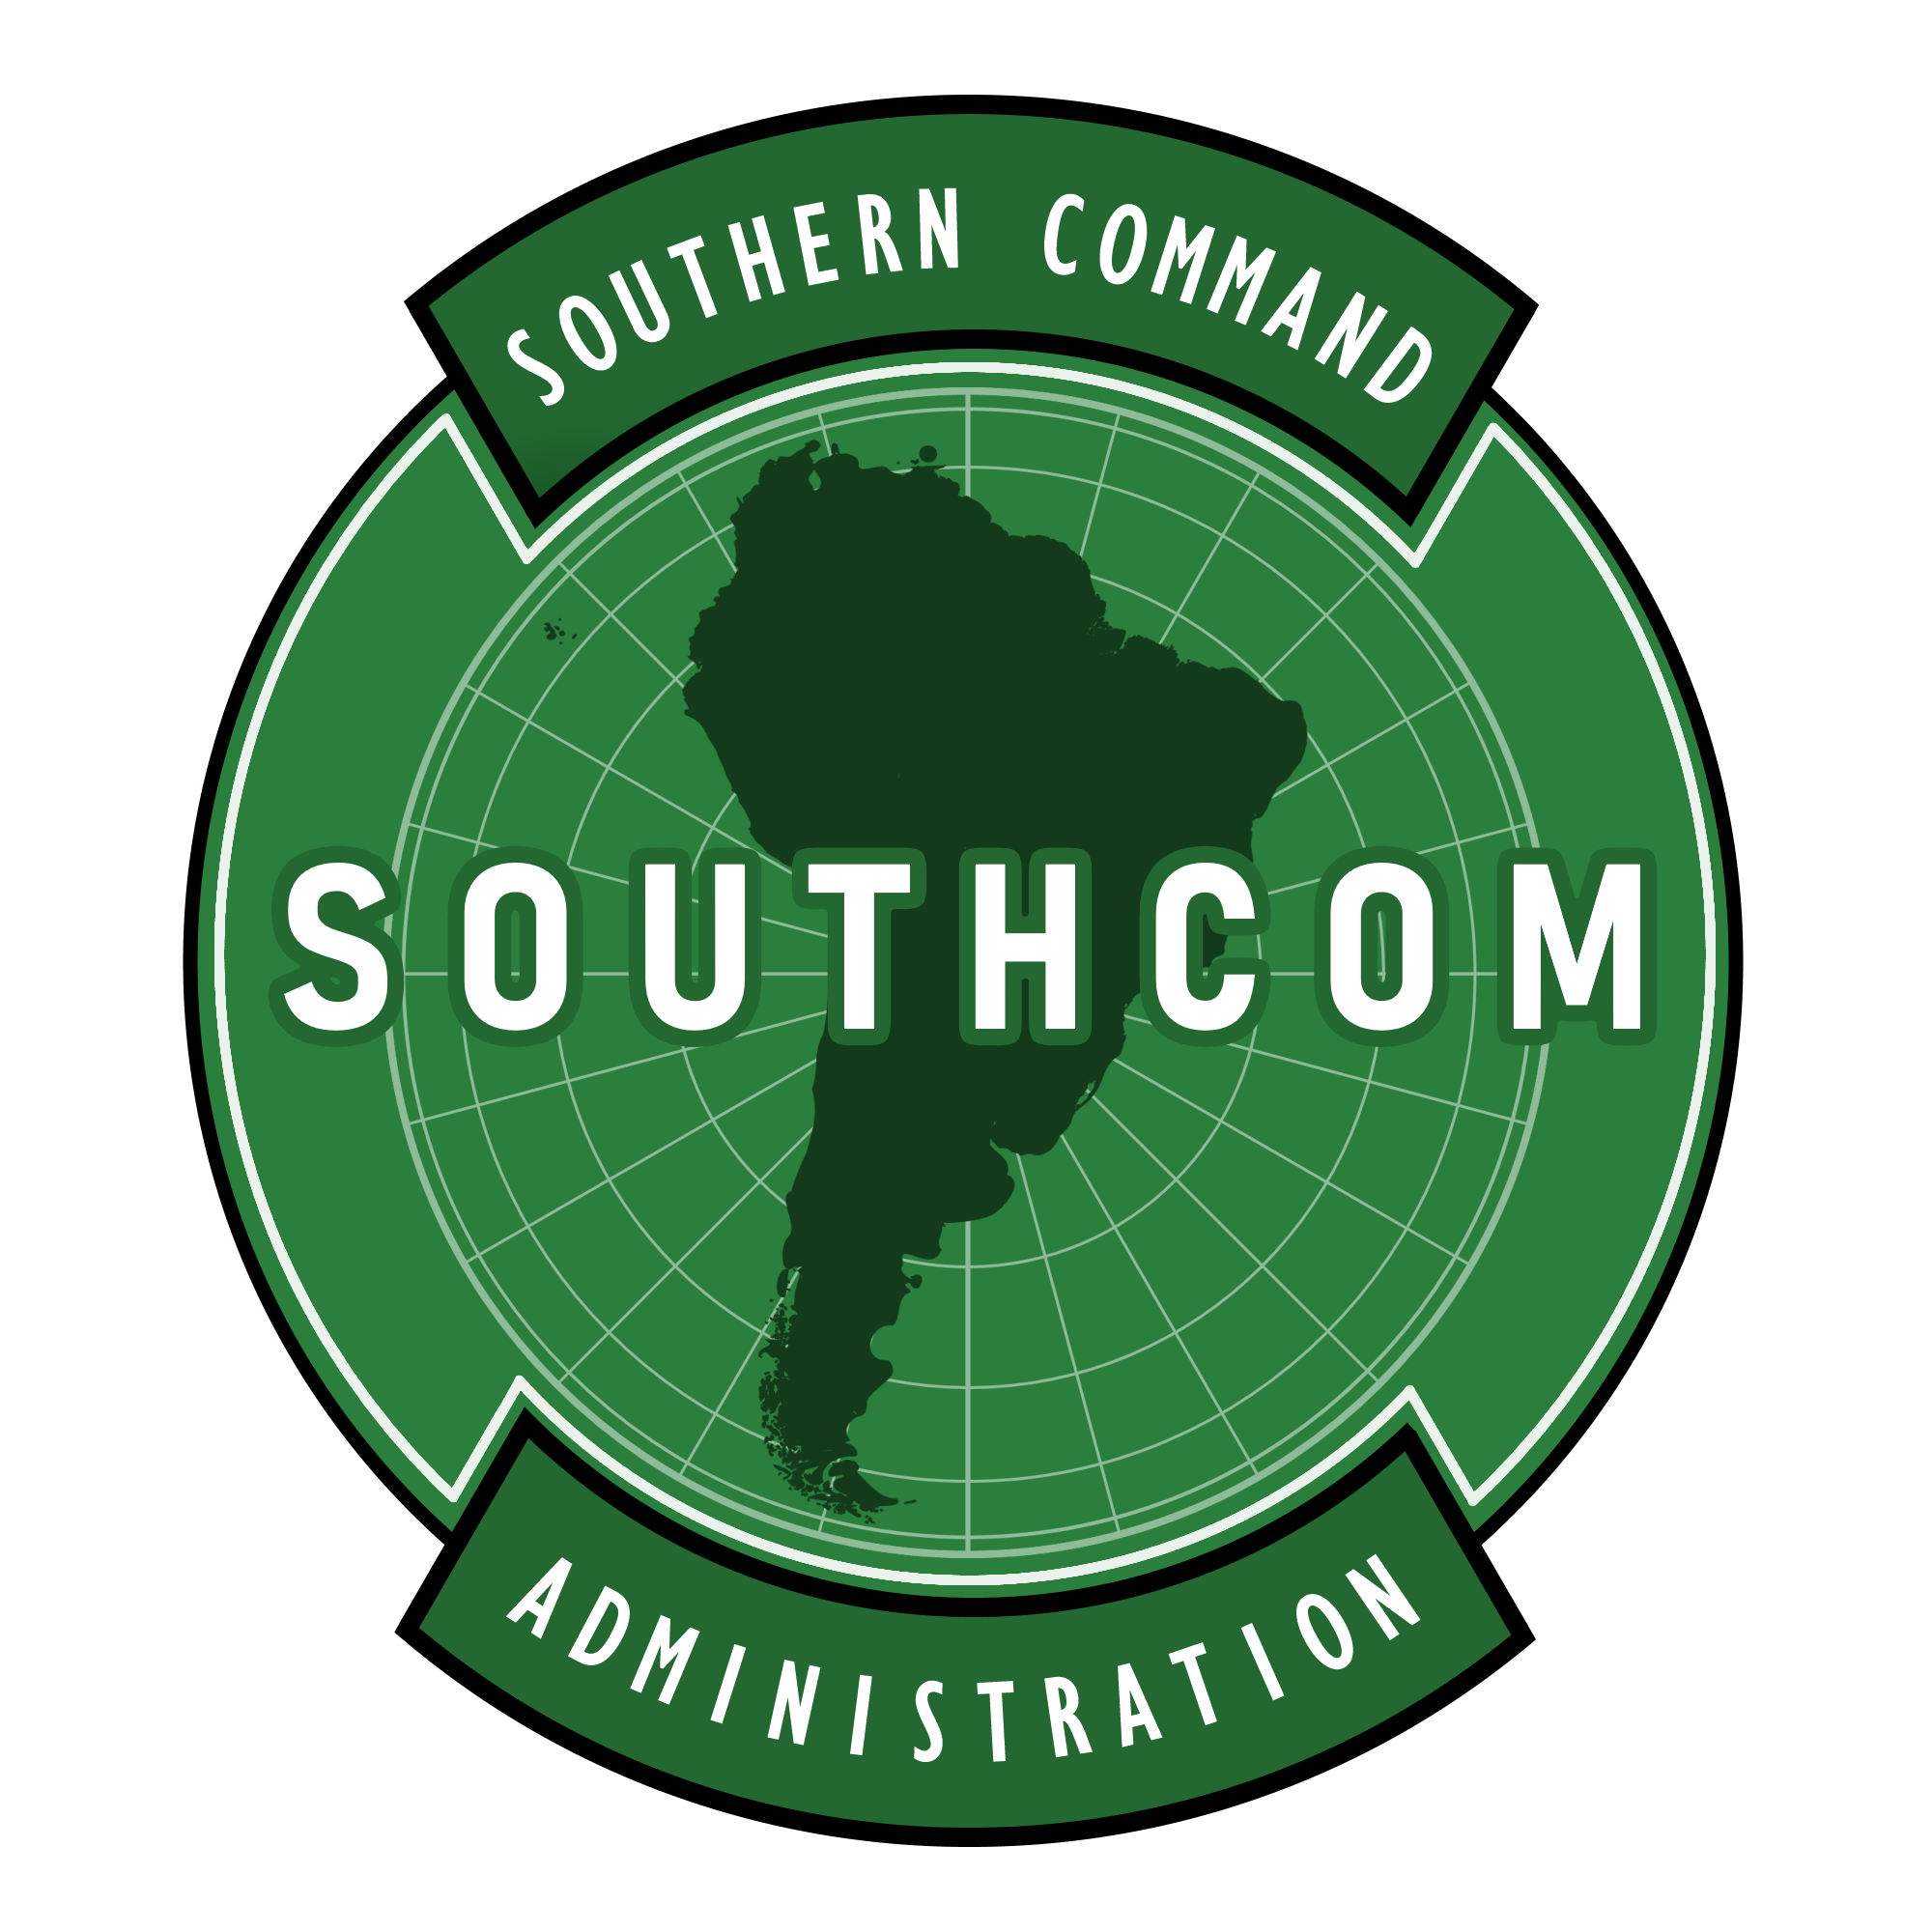 %5B2020%5D%20Southern%20Command.png